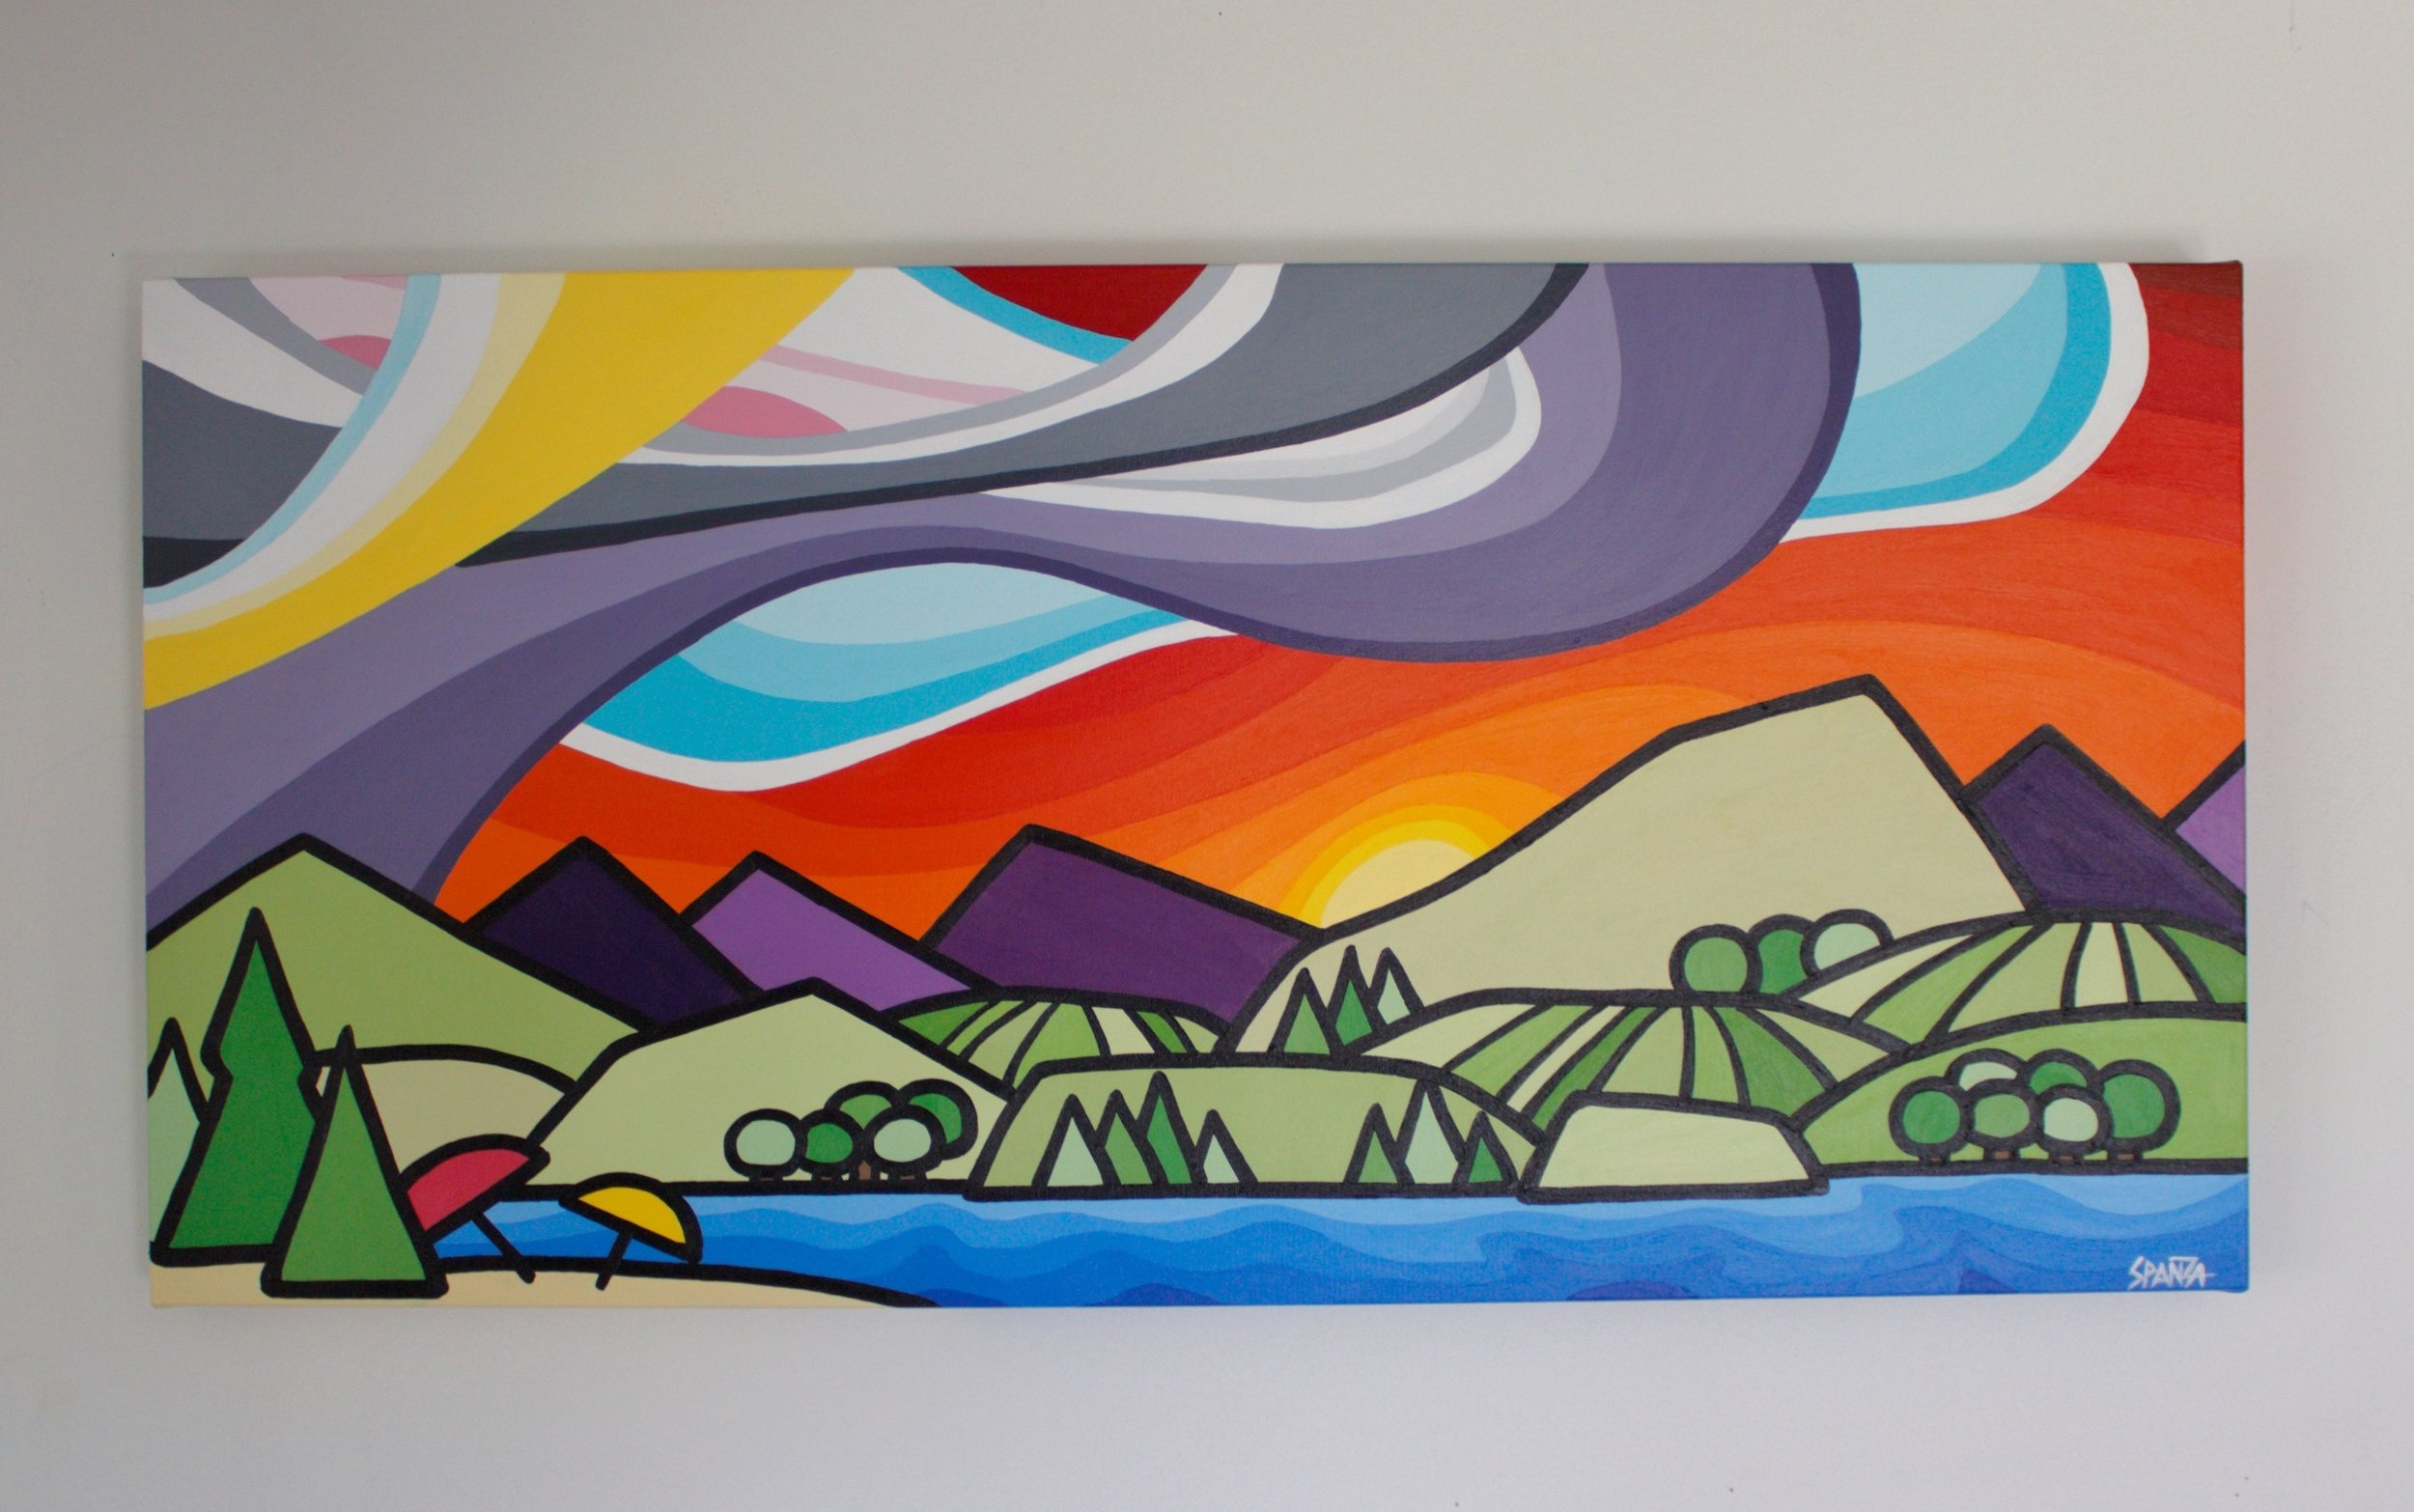 "Beach Days - Size: 18"" x 36"" acrylic on canvasPrice: SOLD"